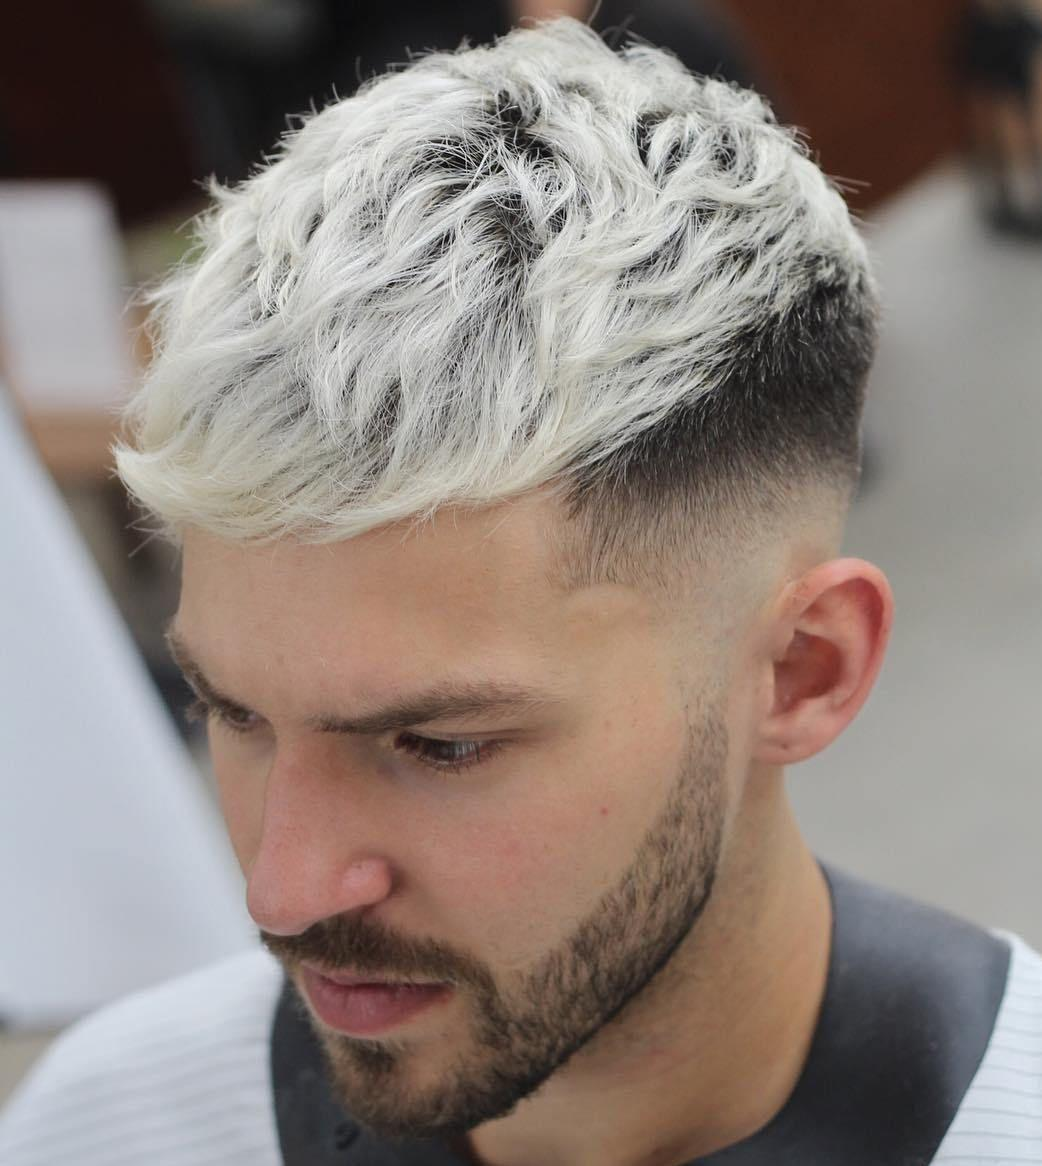 The Best 20 Stylish Men's Hipster Haircuts In 2019 Hair Men Pictures